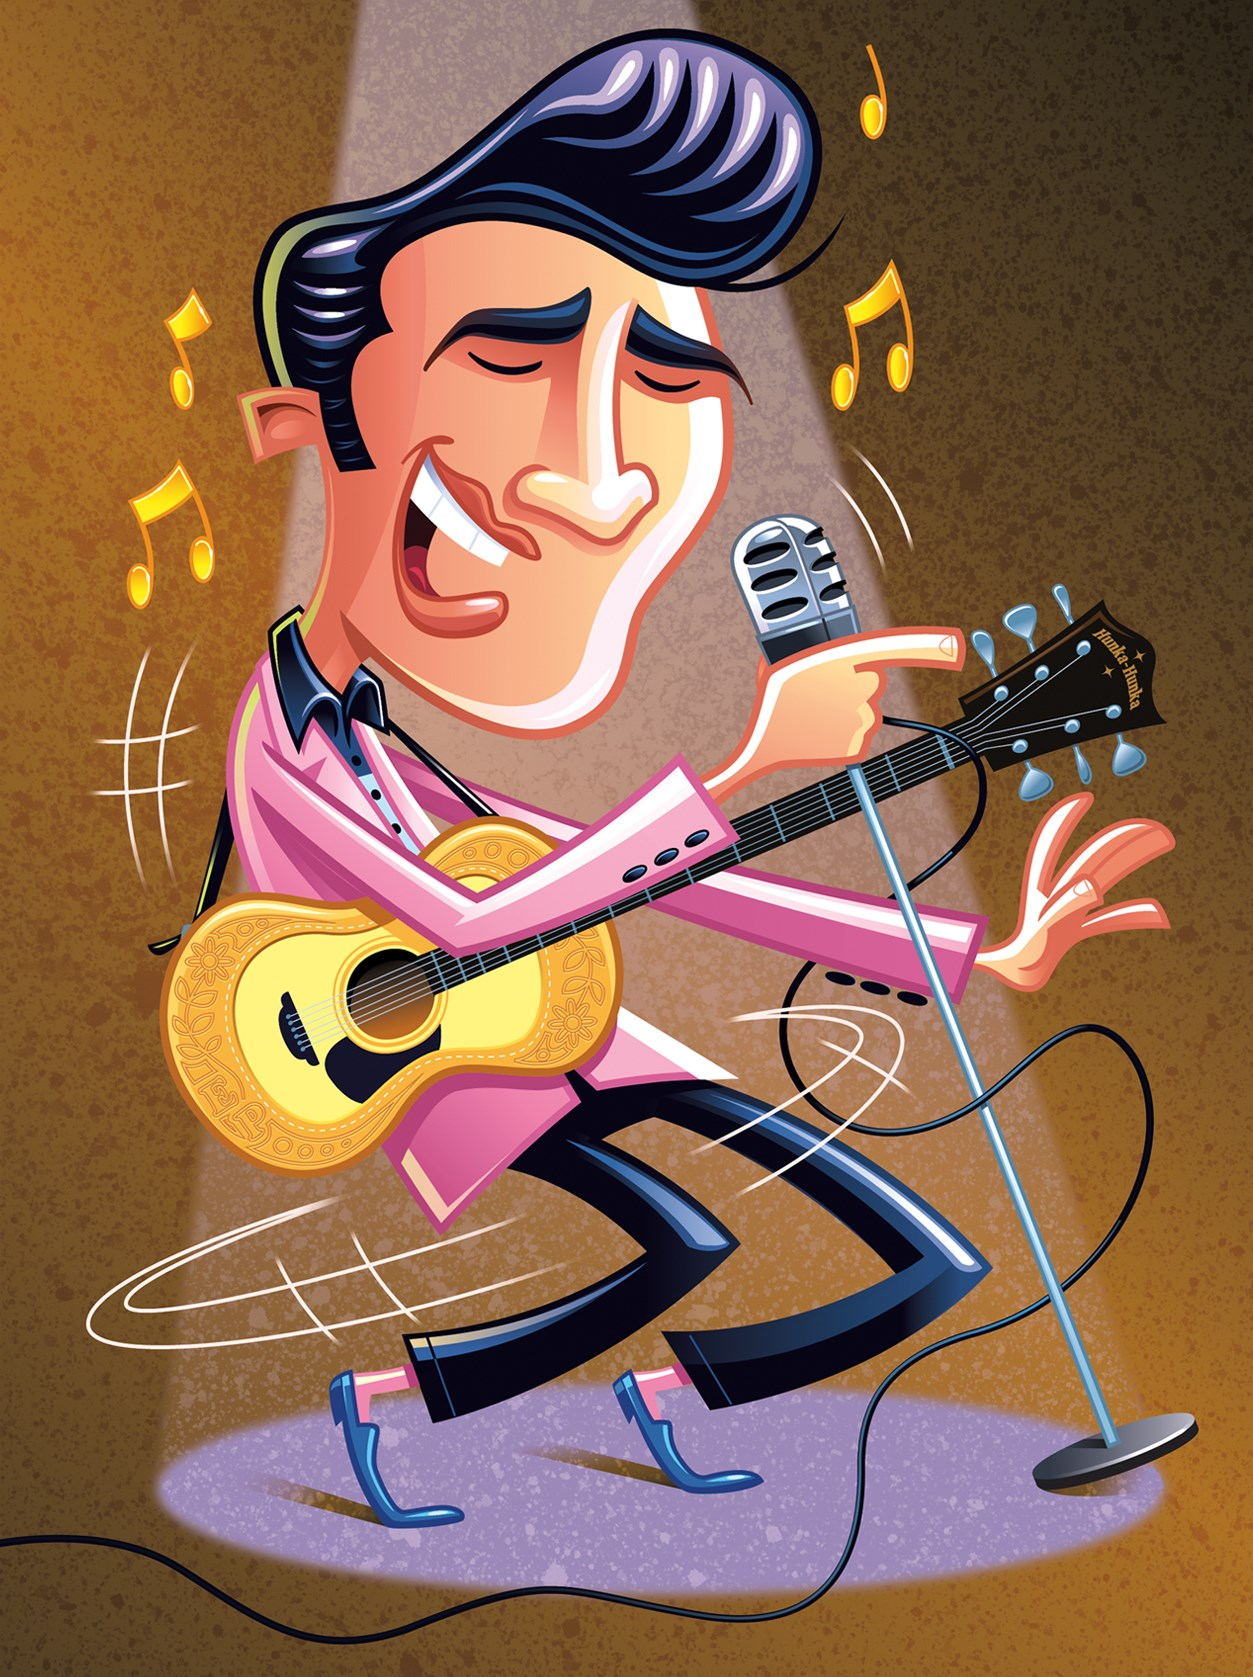 Gary LaCose character art illustration of Elvis Presley